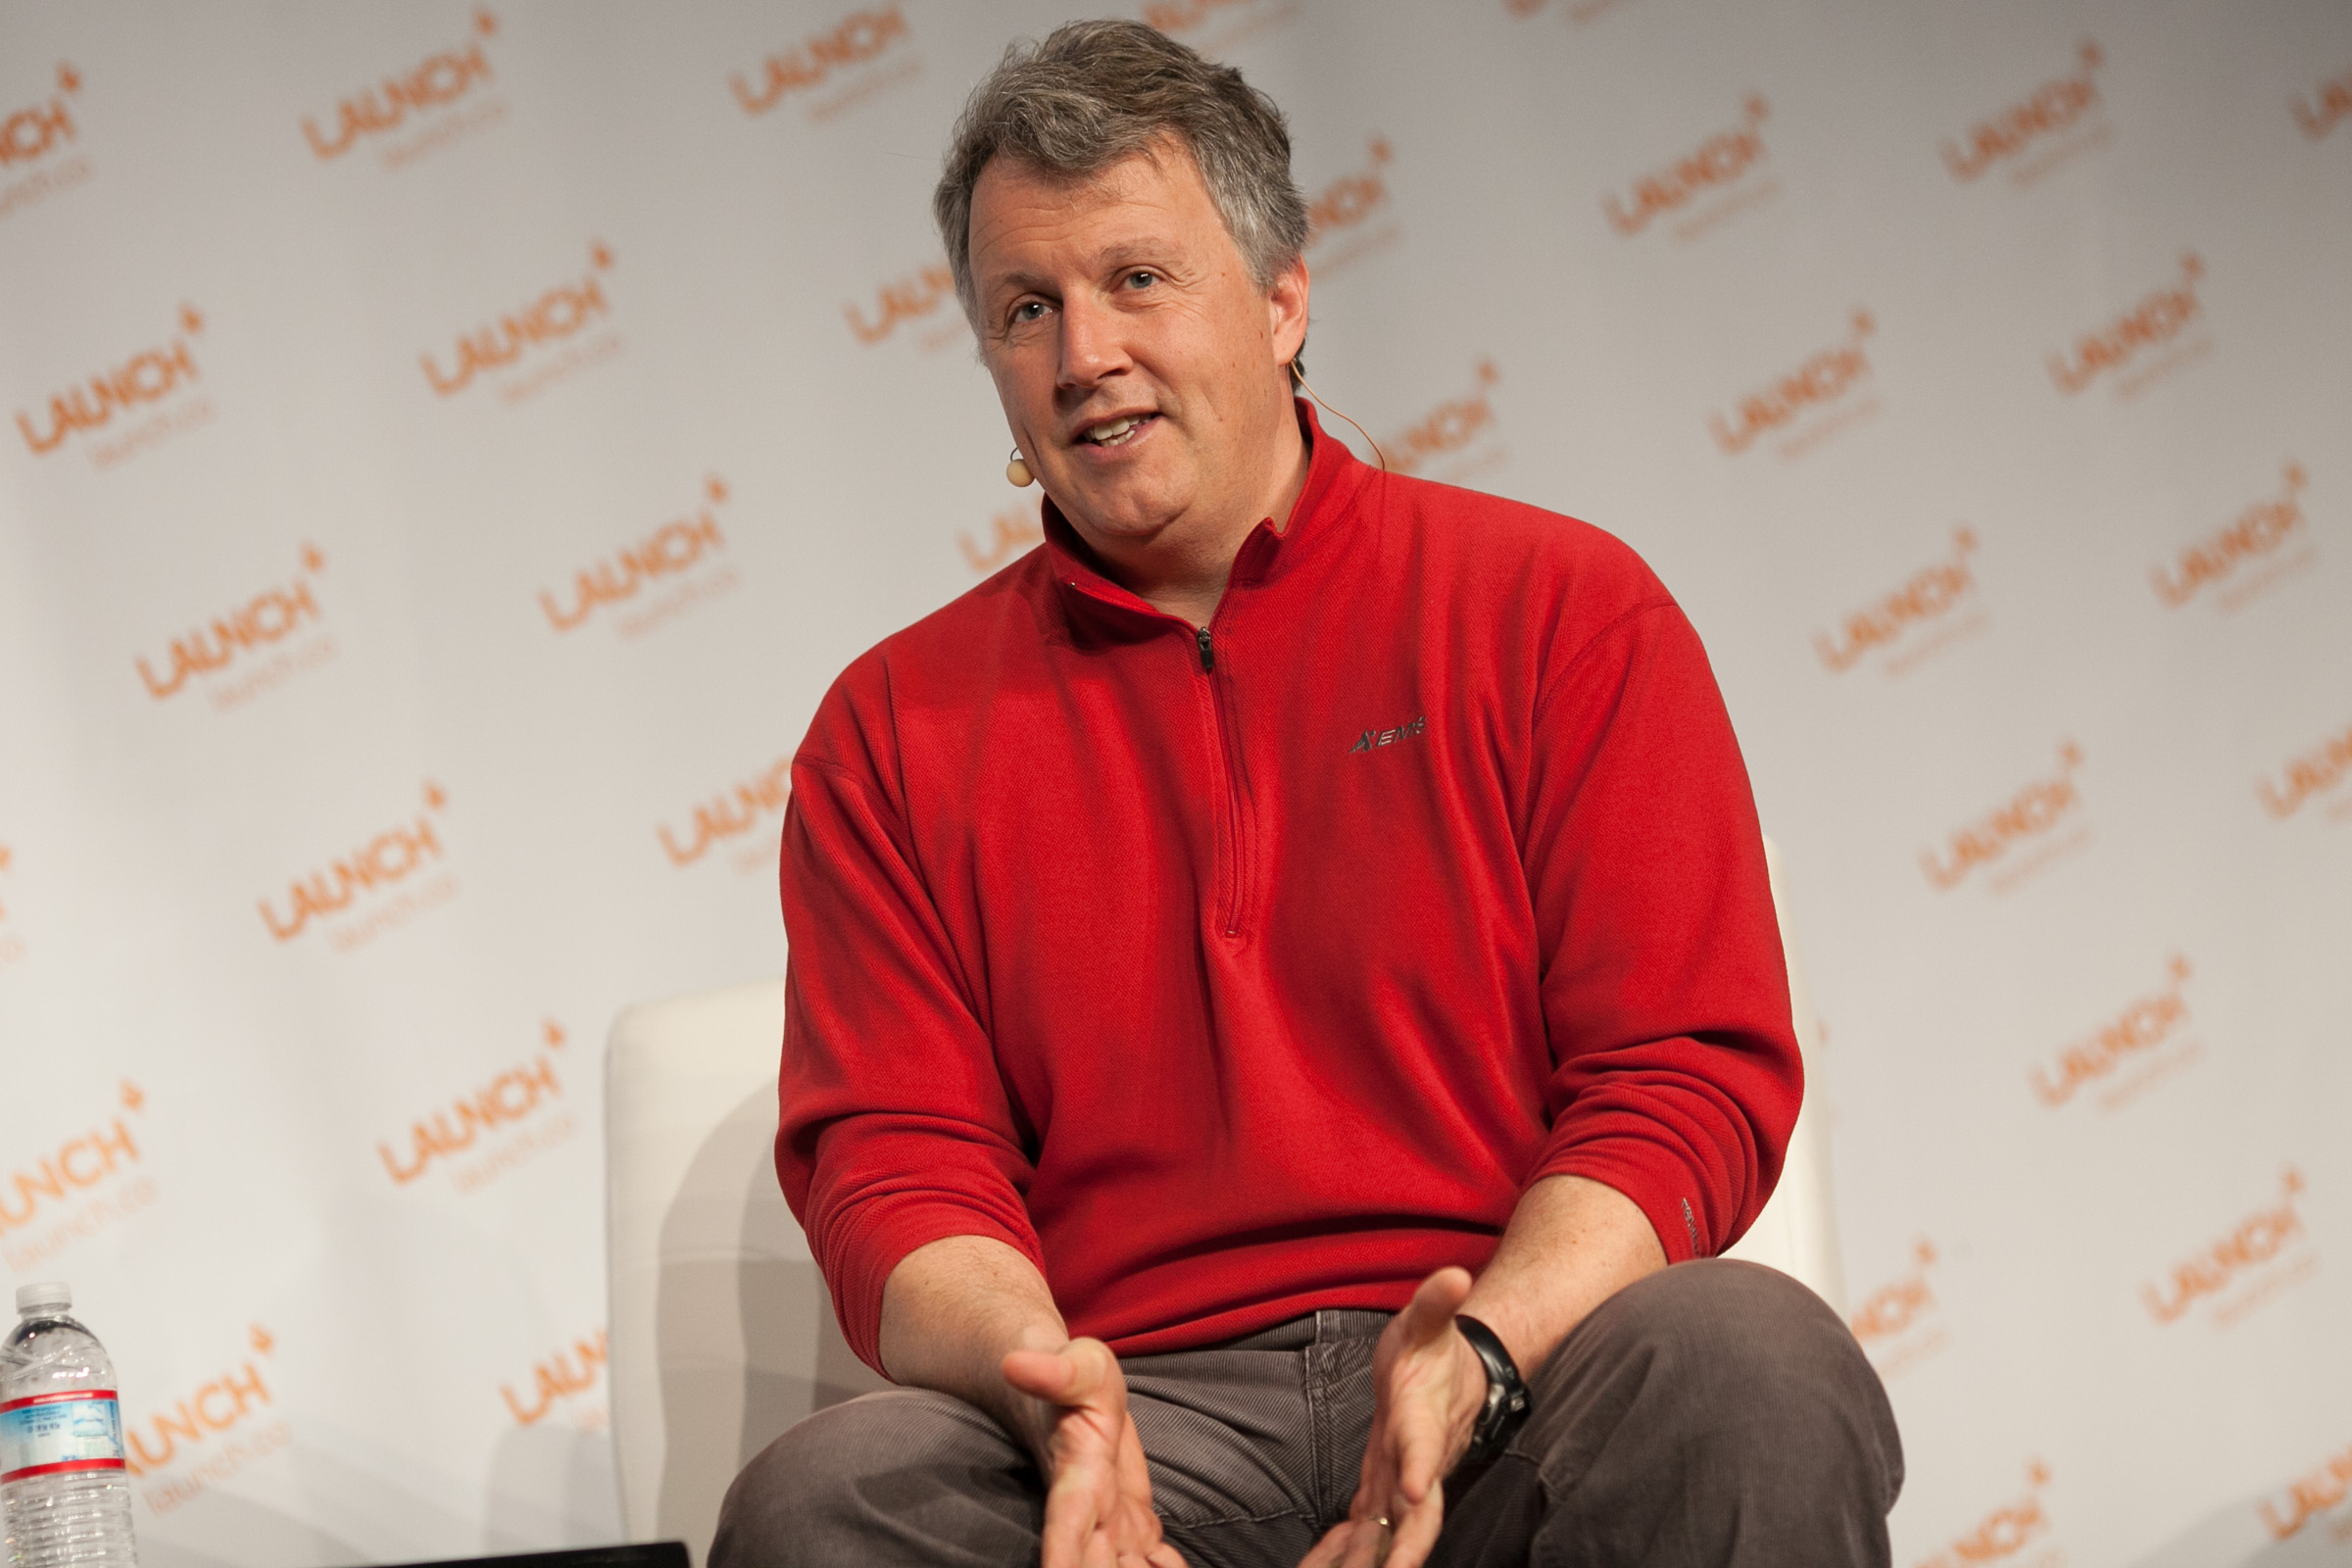 Y Combinator 共同創辦人 Paul Graham(photo credit: JD Lasica via Flickr)